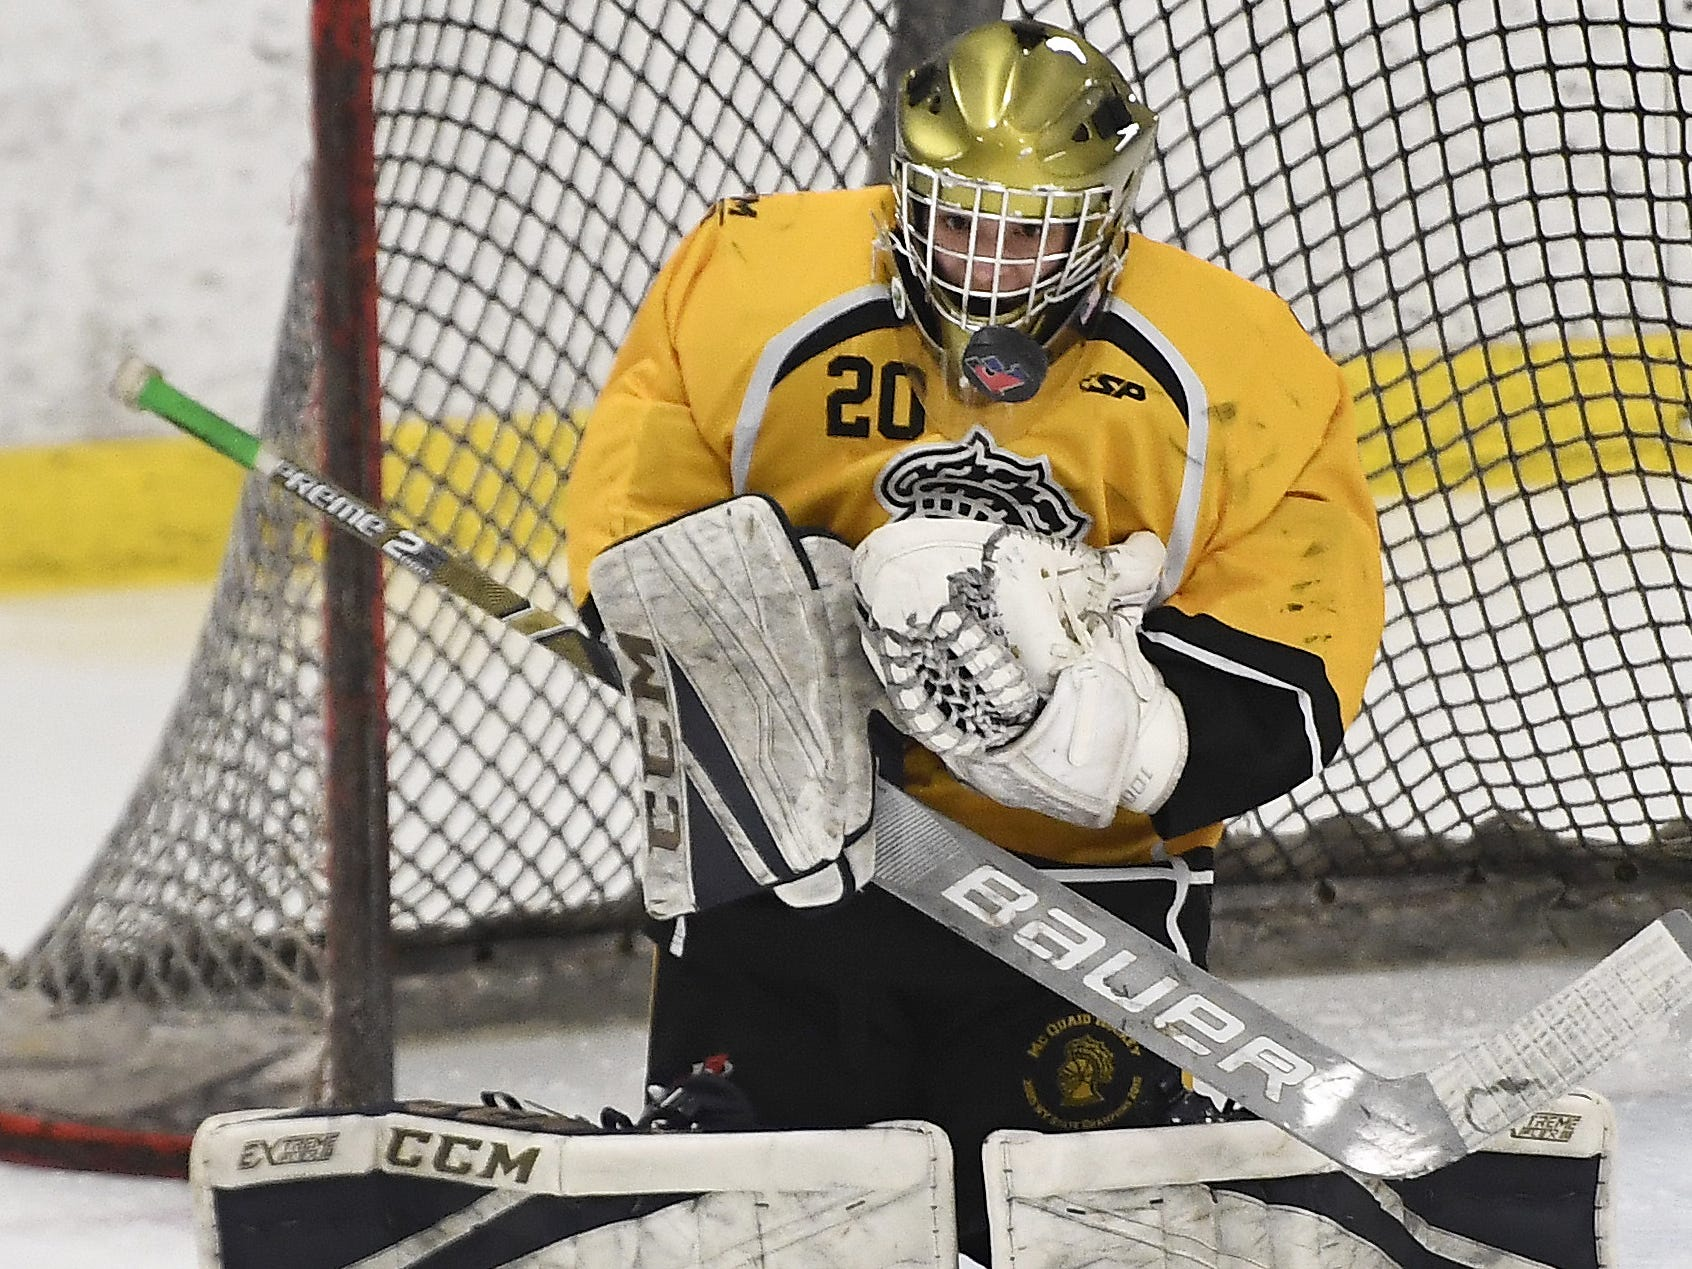 McQuaid goalie David Battisti makes a save during the second period of a regular season game against Fairport played at the Rochester Ice Center, Wednesday, Feb. 6, 2019. McQuaid beat Fairport 5-4 in overtime.